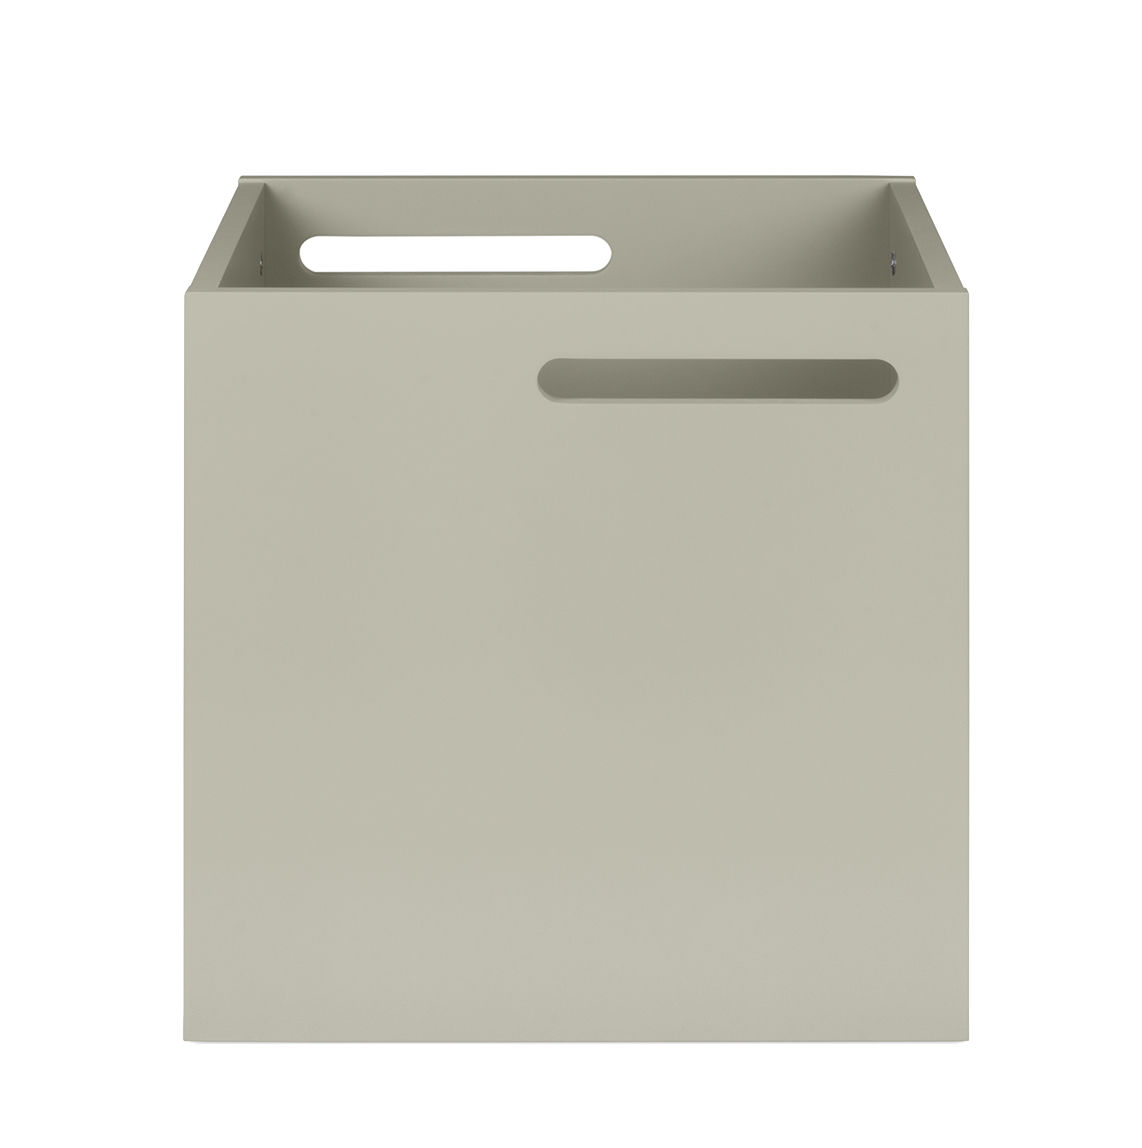 Furniture - Bookcases & Bookshelves - Crate - For Rotterdam bookshelf by POP UP HOME - Light grey - Painted MDF